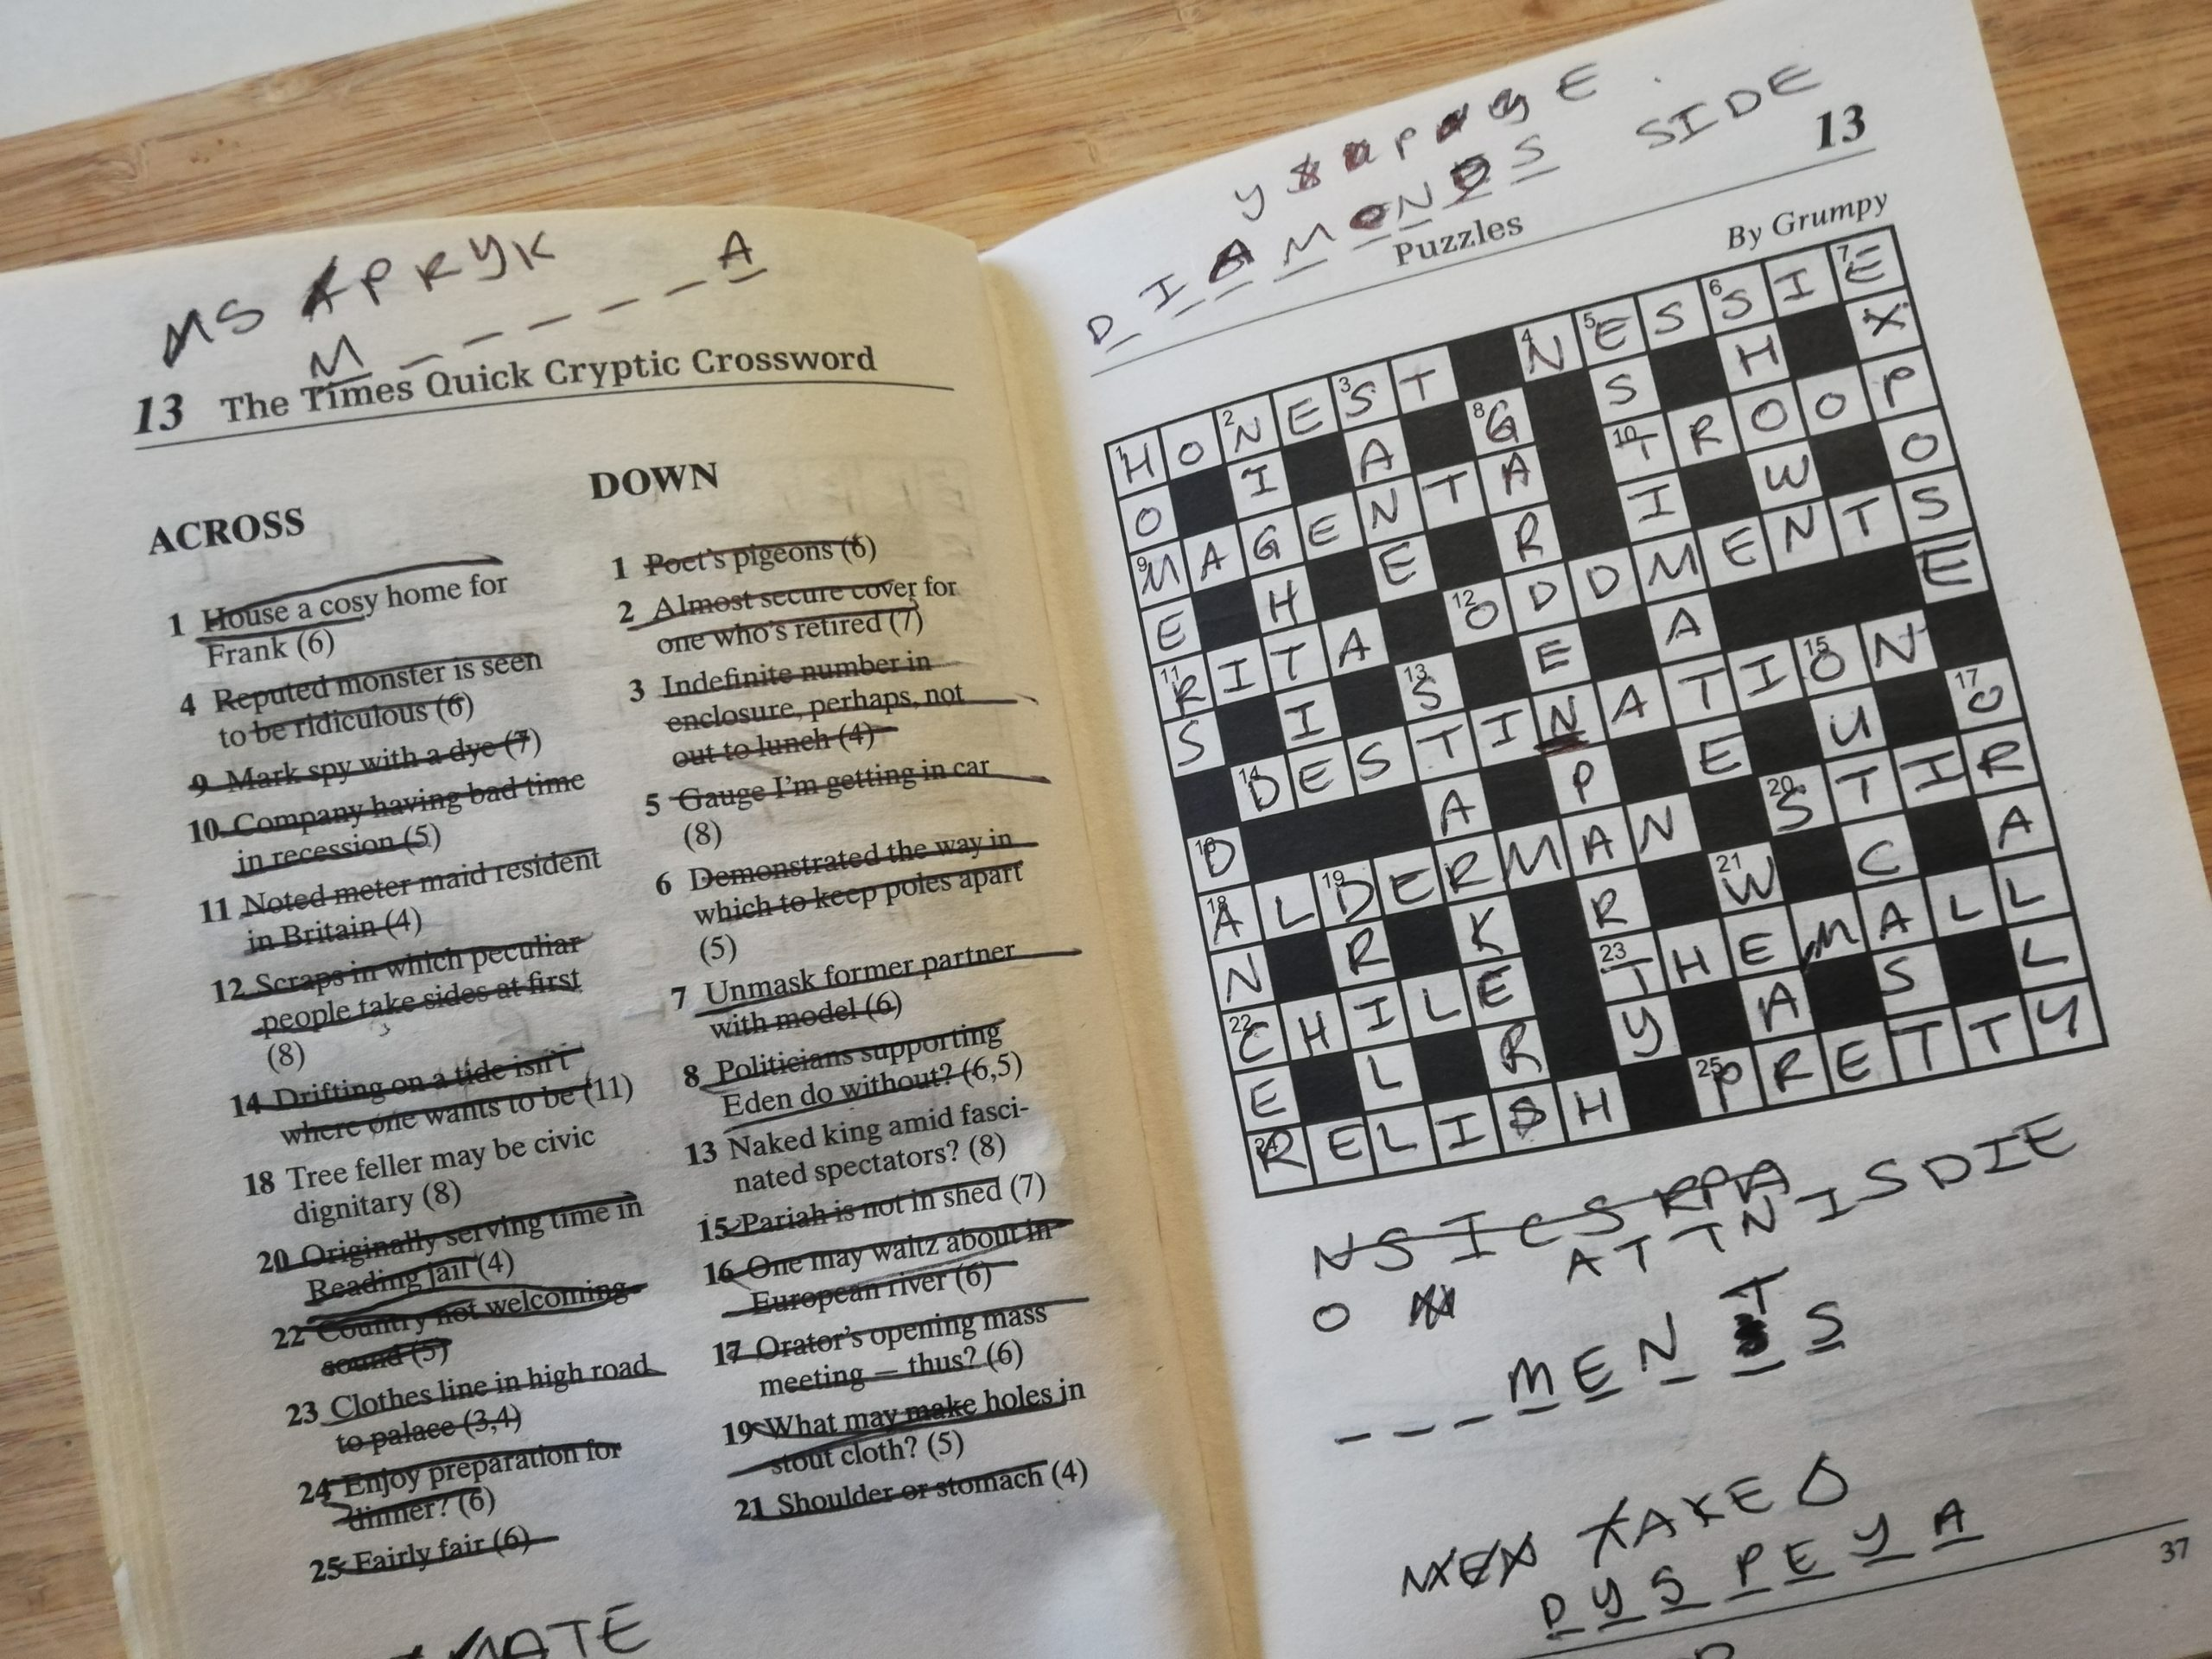 Cryptic Crosswords. In the picture there is a completed puzzle with a number of notes scribbled in the margins.